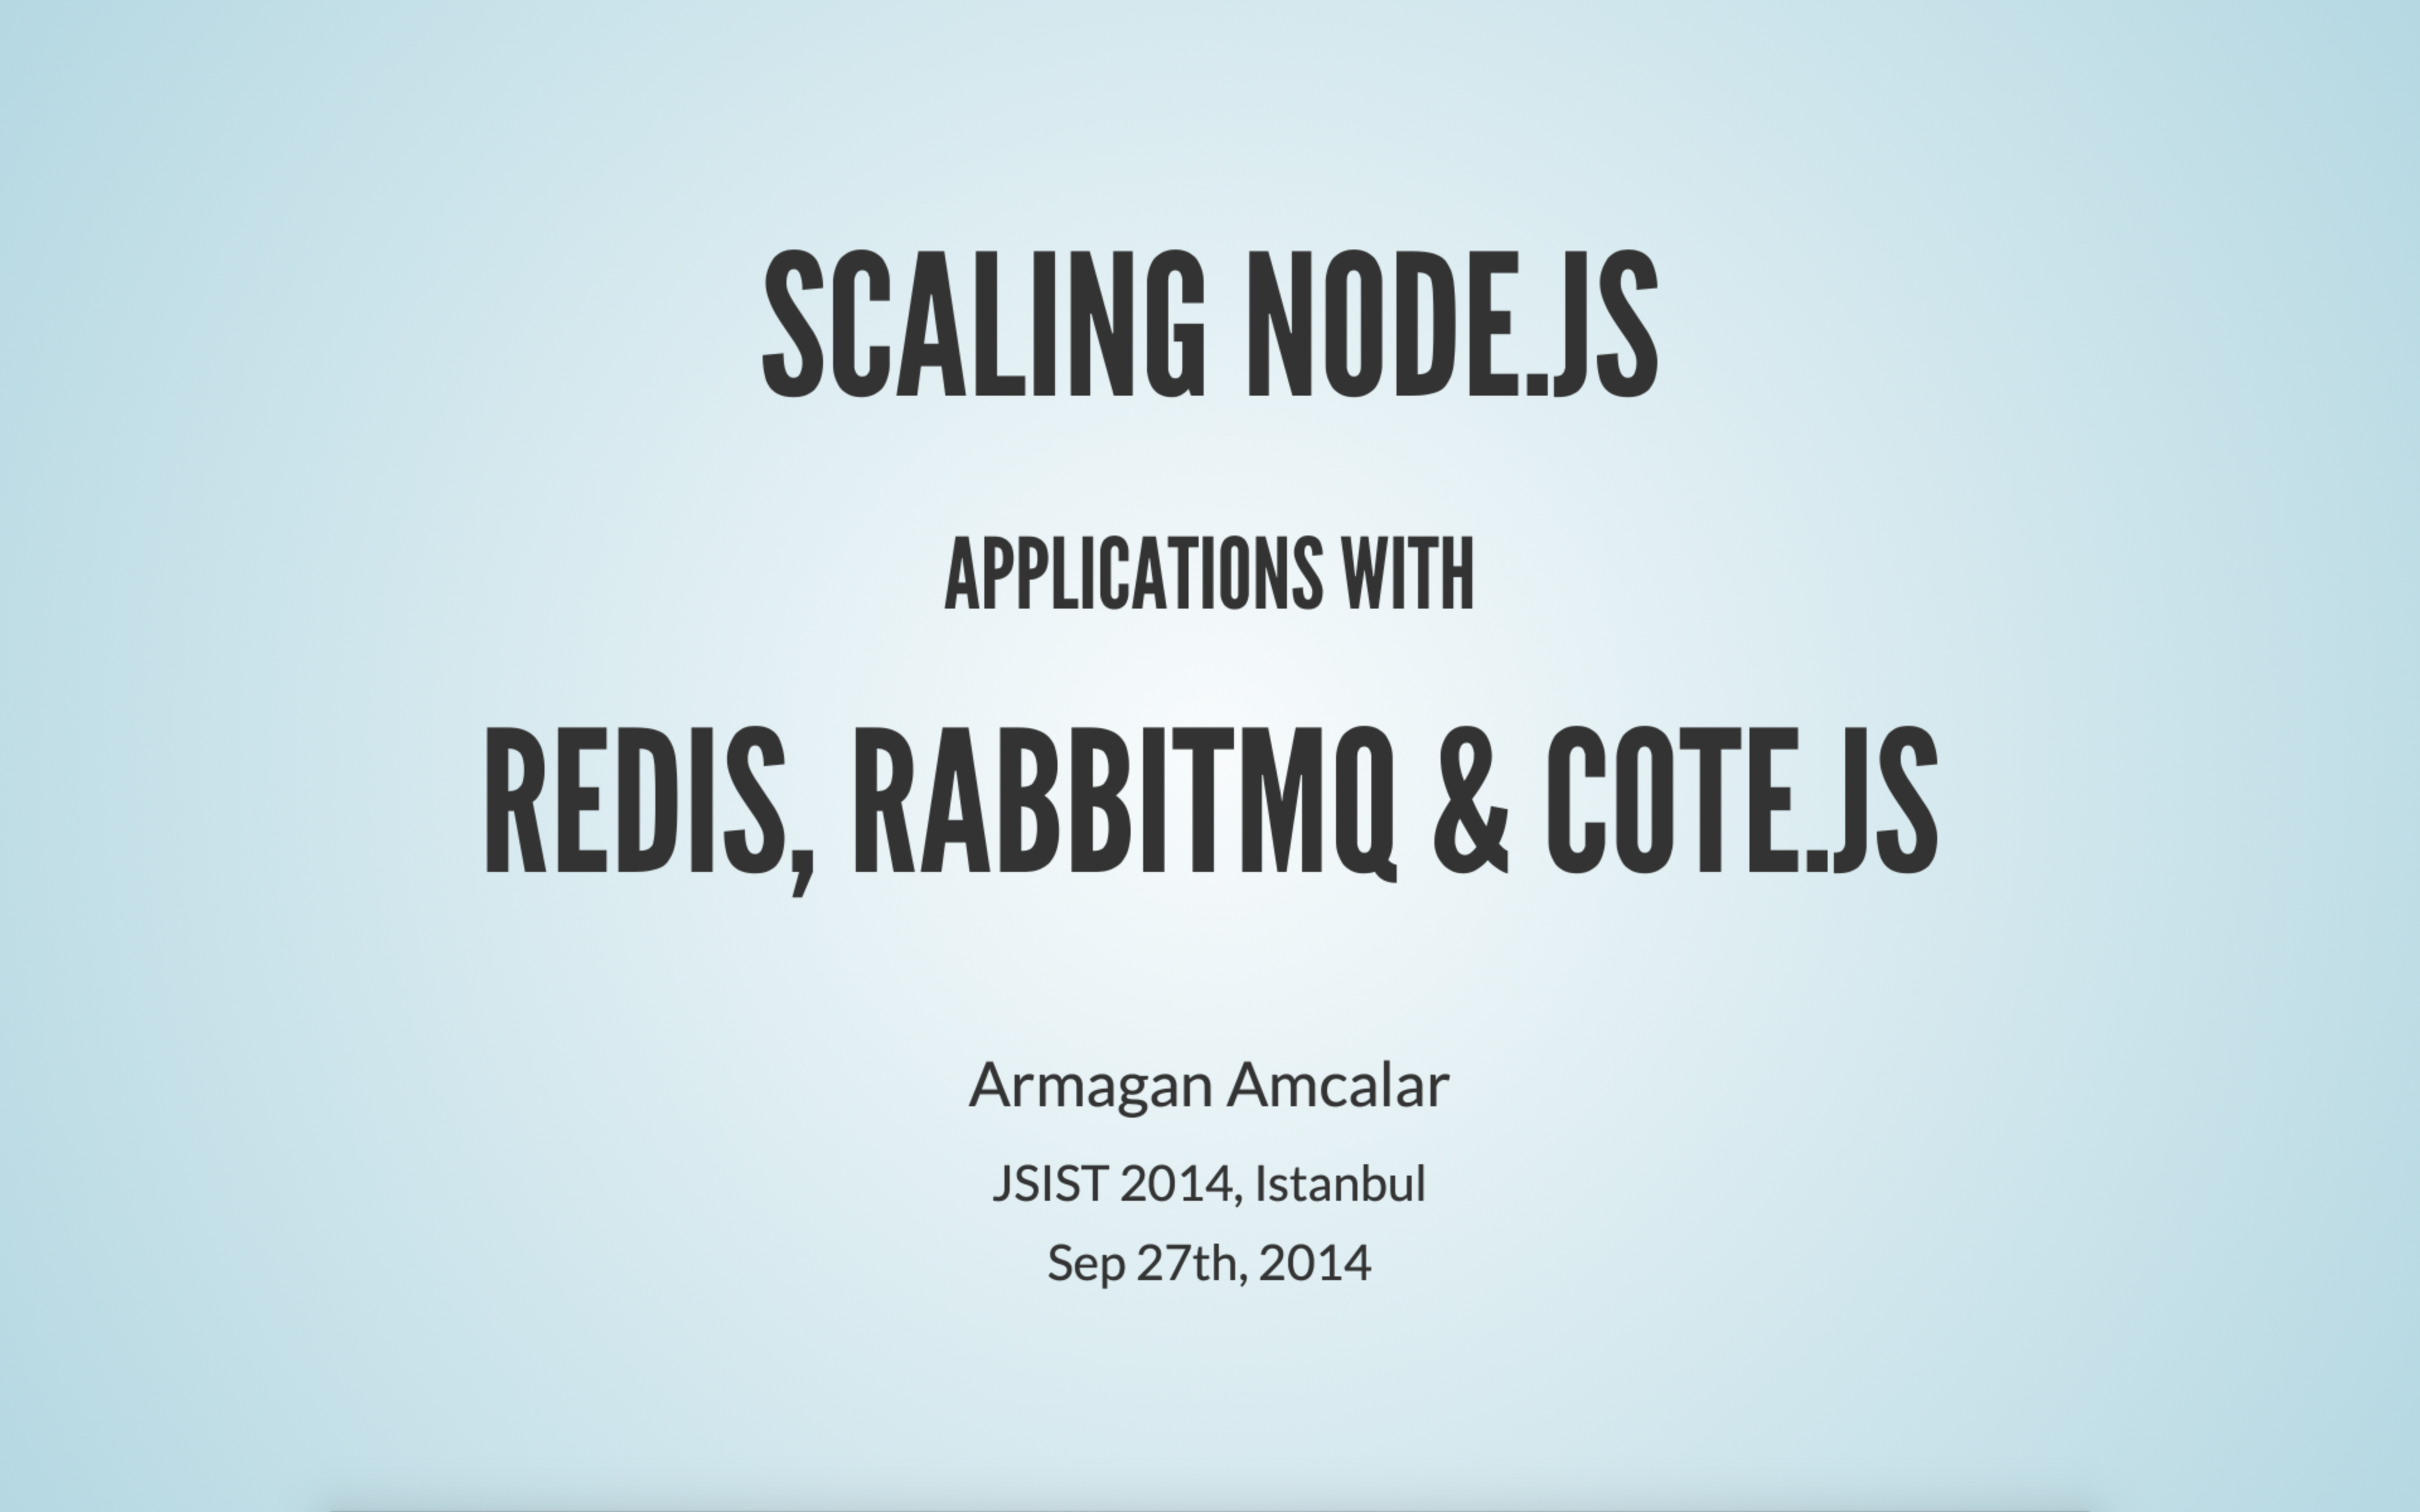 Scaling Node js applications with Redis, RabbitMQ and cote js